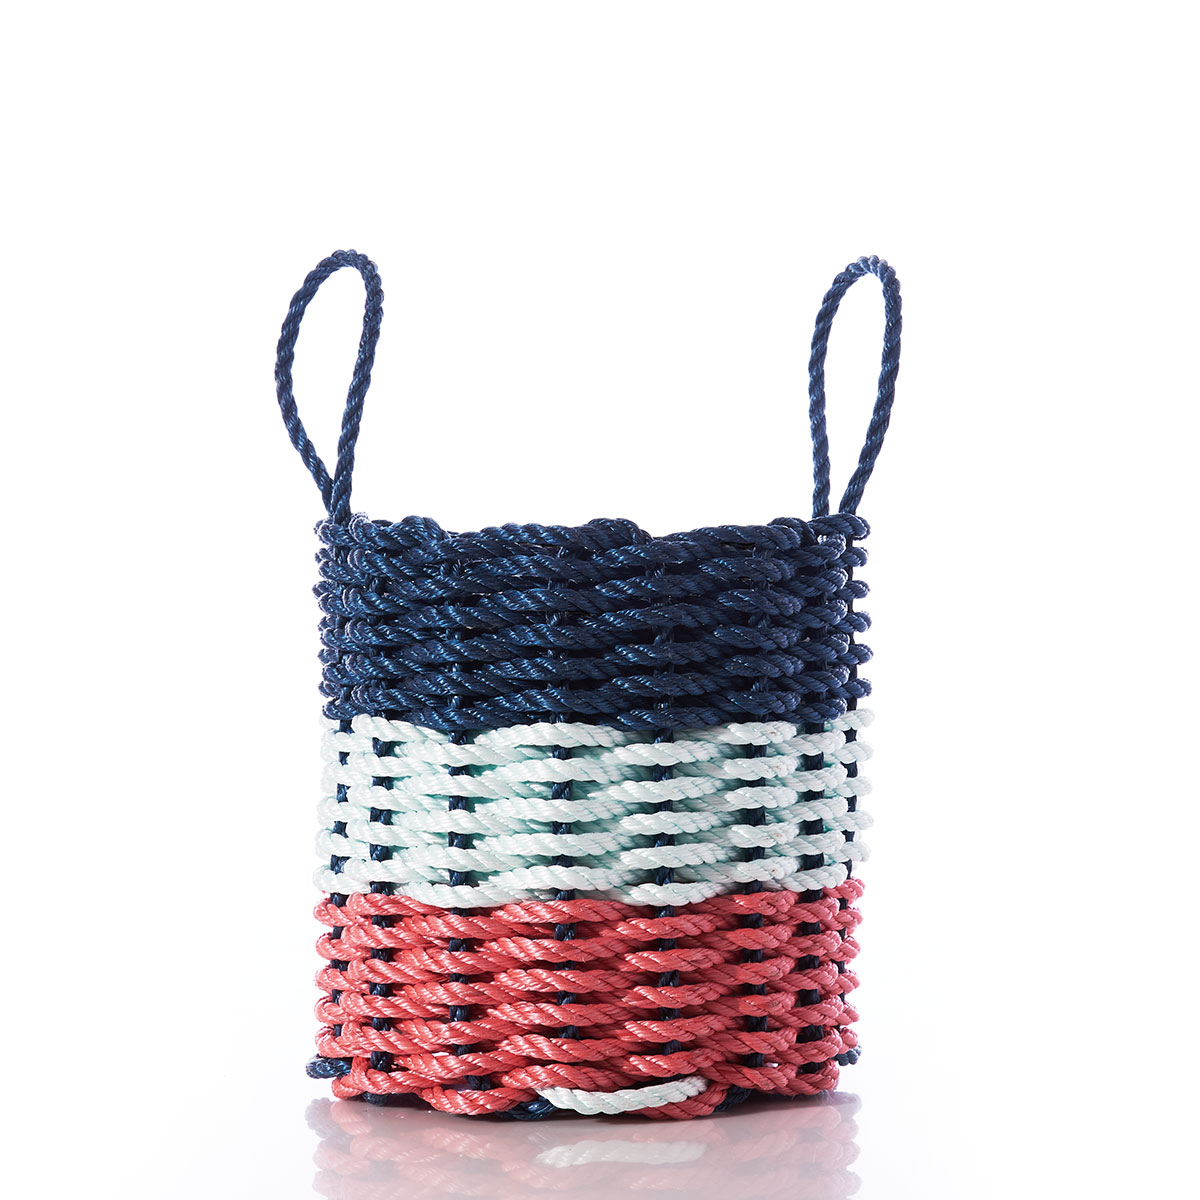 Fisherman Rope Basket - Navy, Sea Foam, & Red